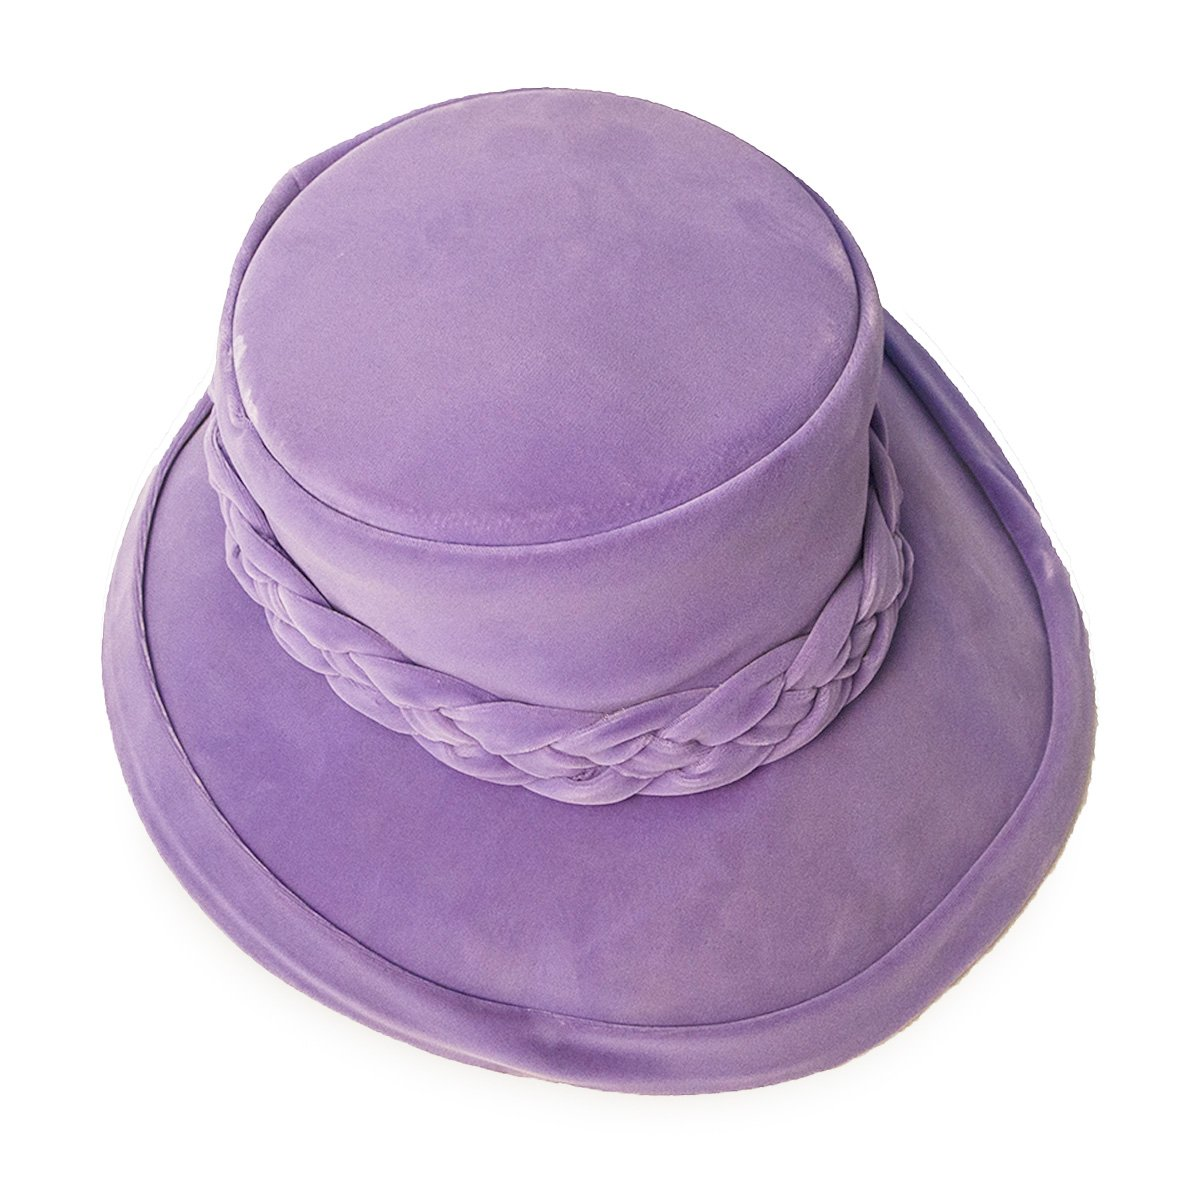 Vintage 1950s Capeline Hat, Light Purple - Lavender Velvet